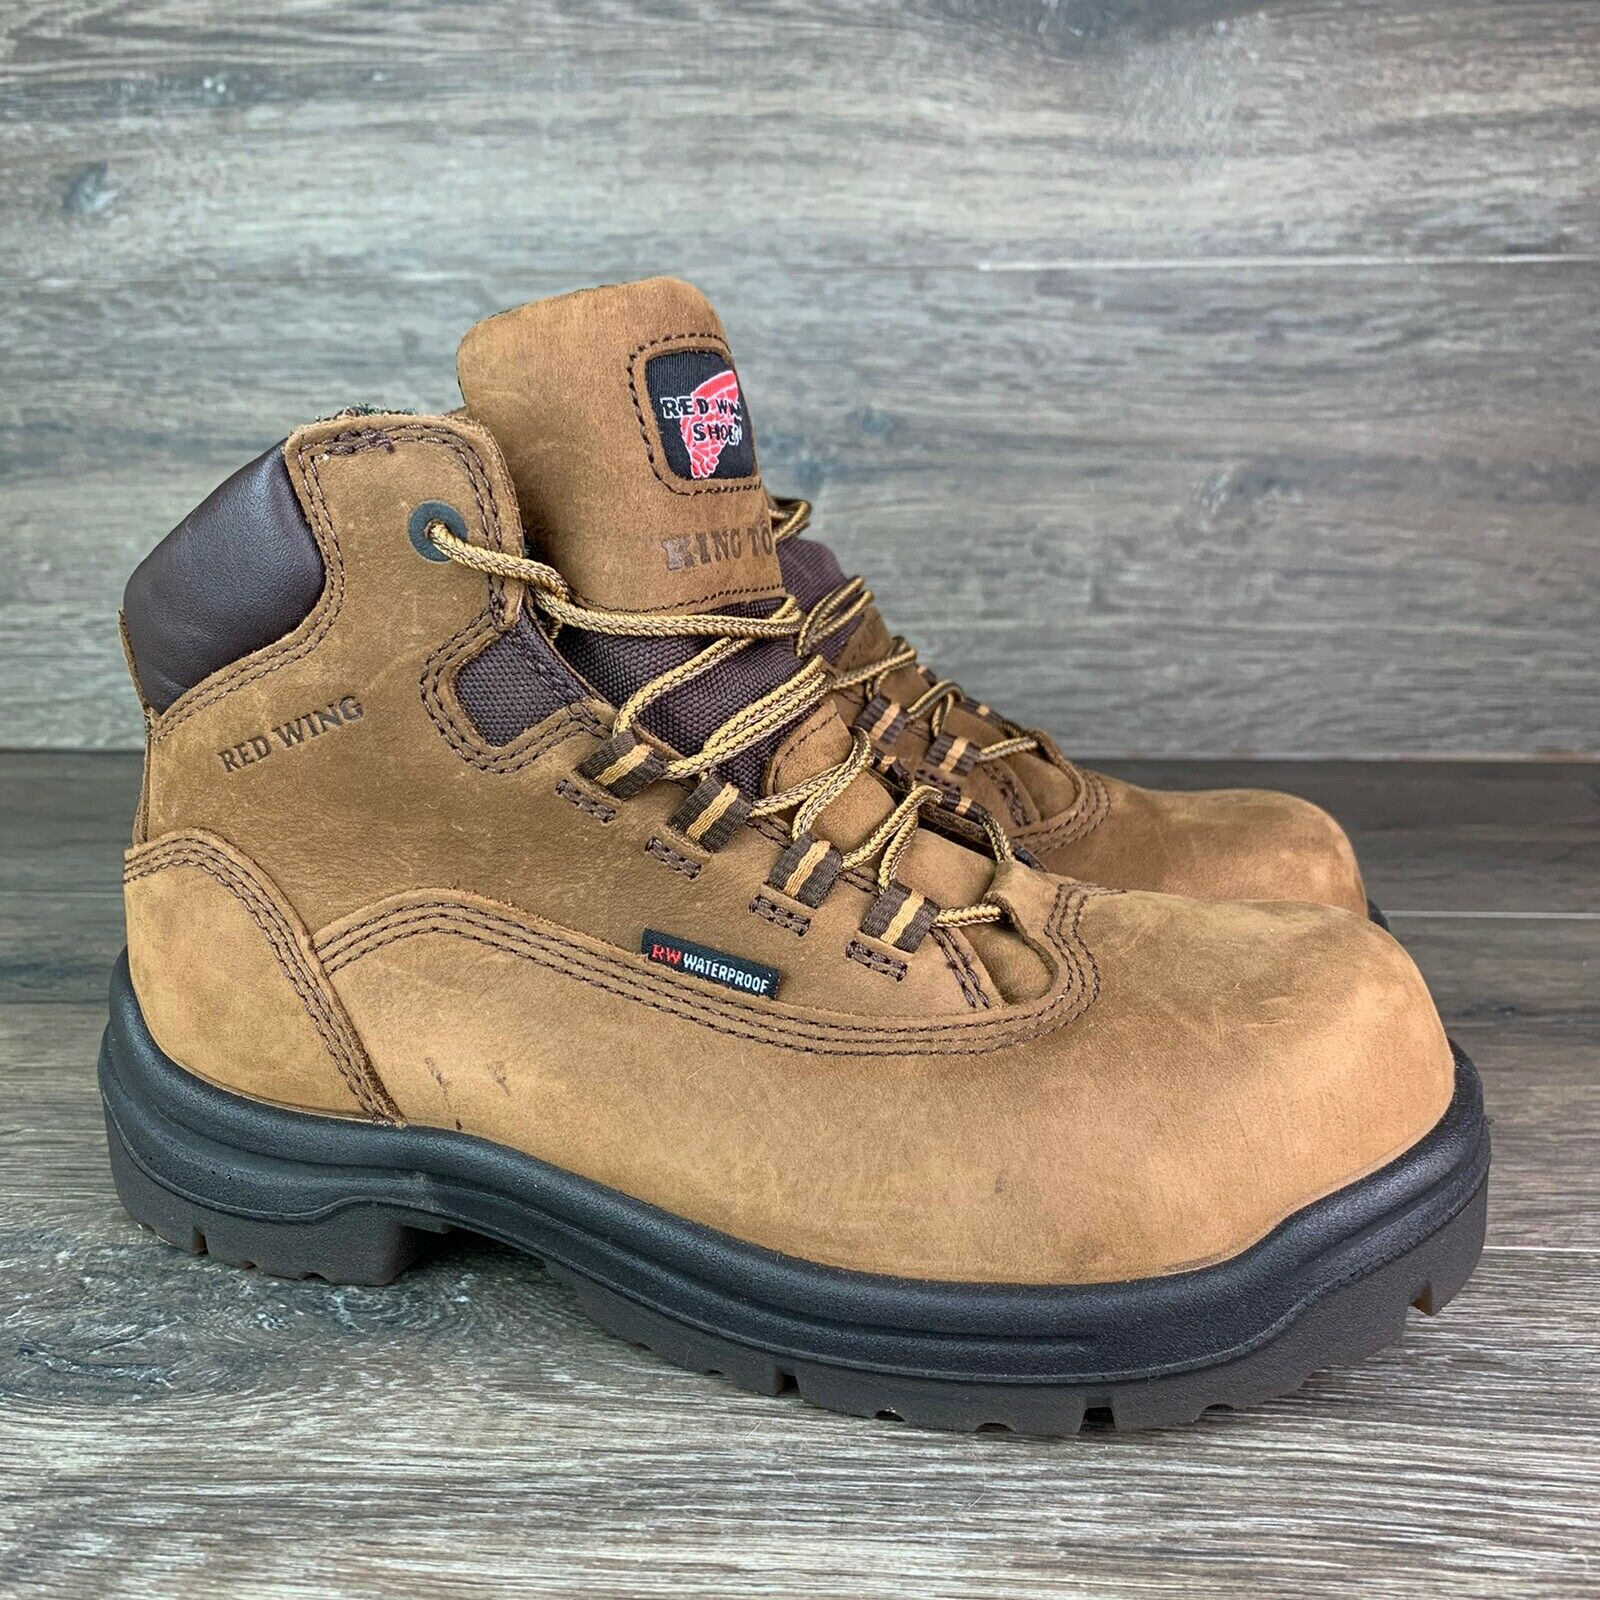 Red Wing Shoes 2340 Work Safety